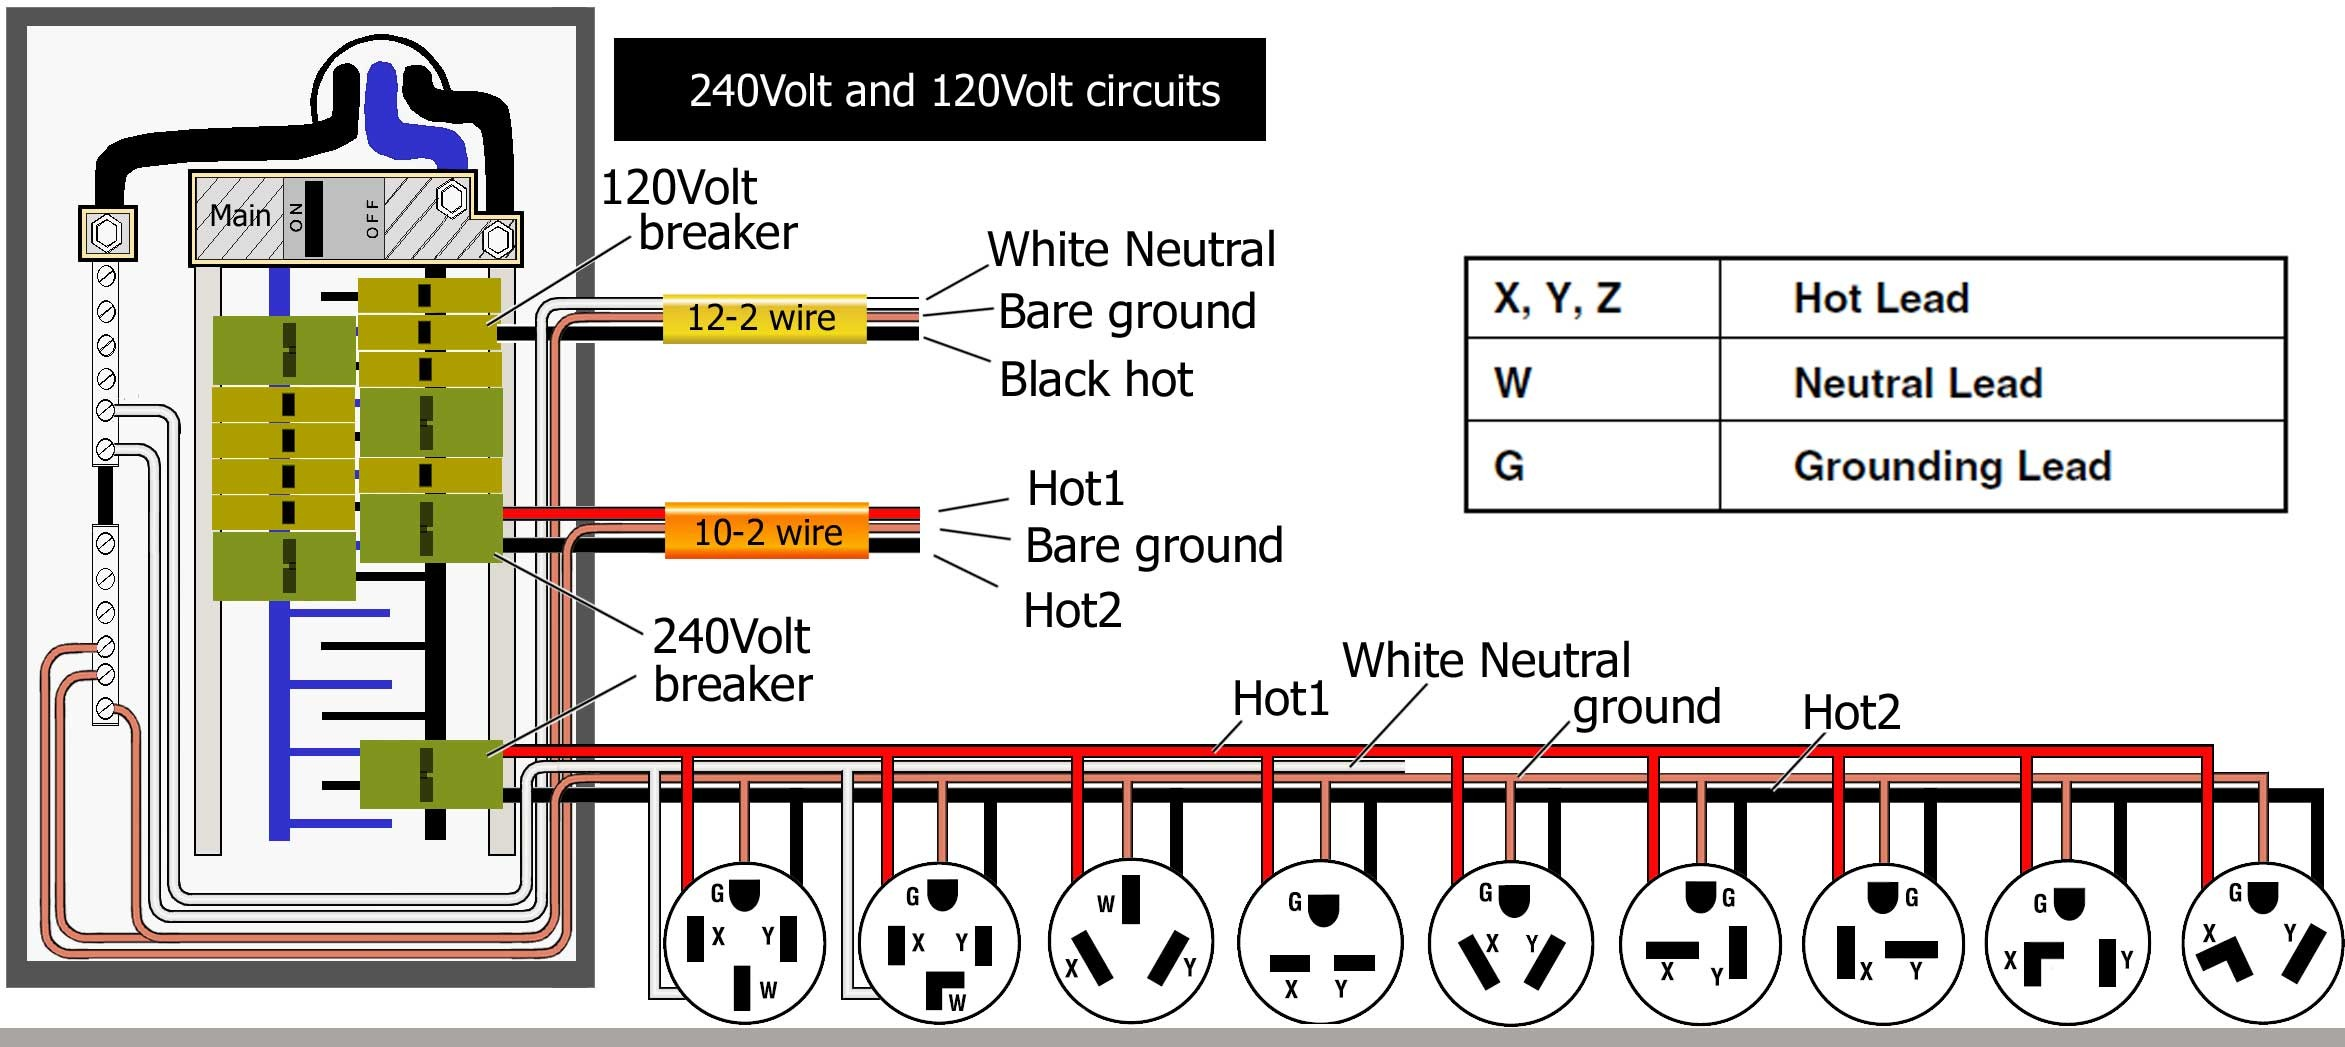 wiring diagram for 240 volt 1 phase switch wiring diagram rh aiandco co